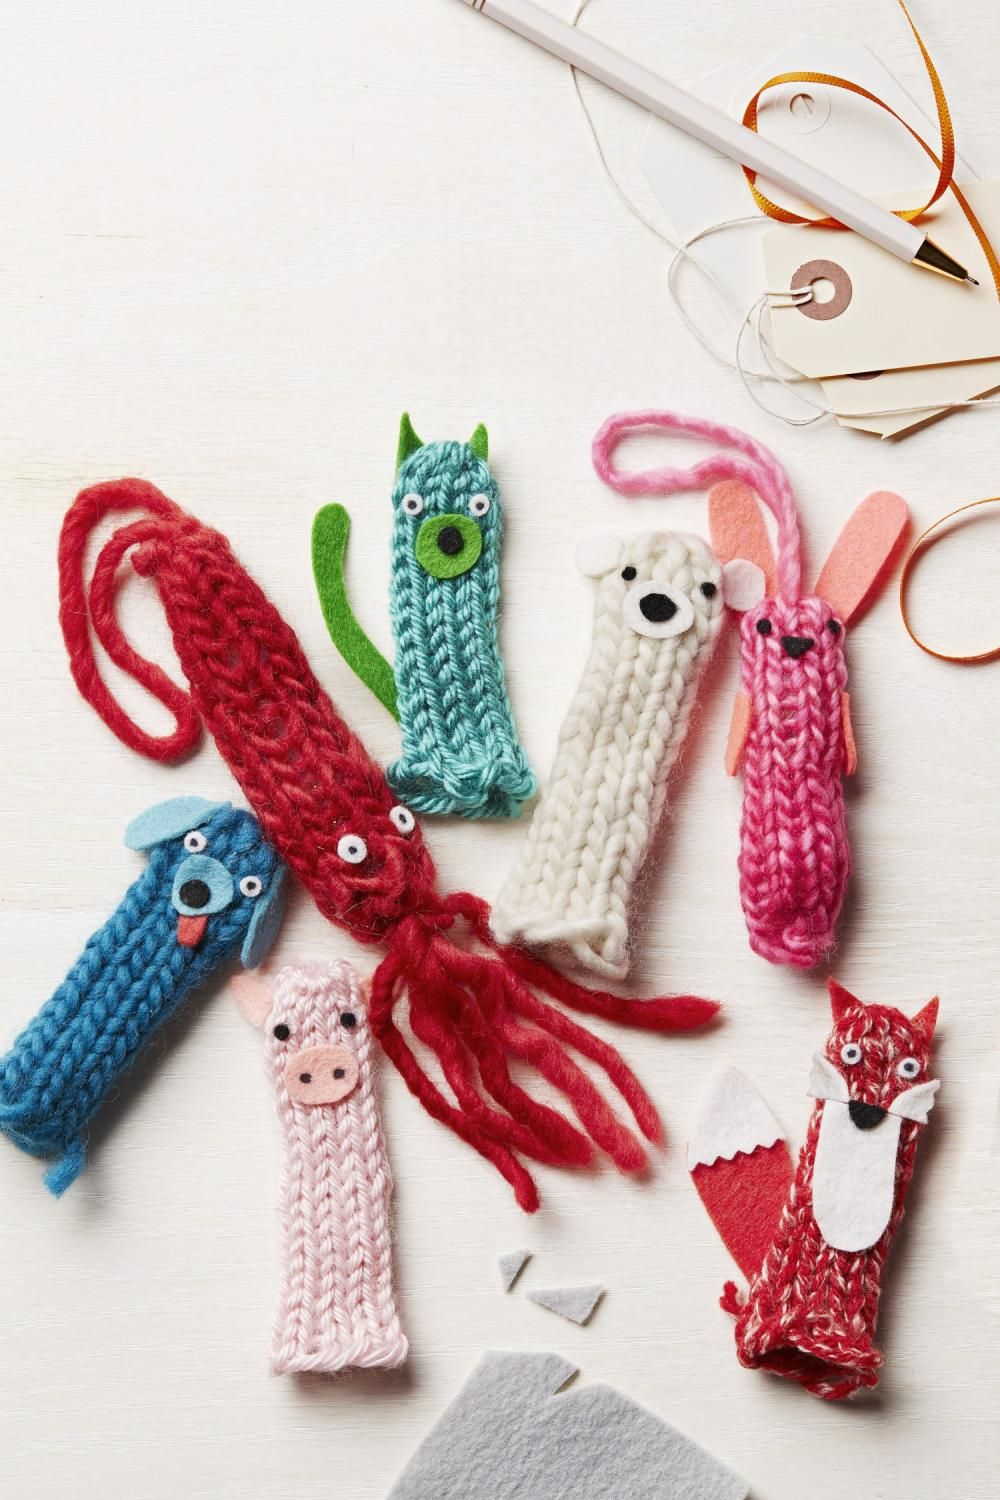 Ideas for creativity: knitted dolls for the 2015 contest, original gifts with their own hands